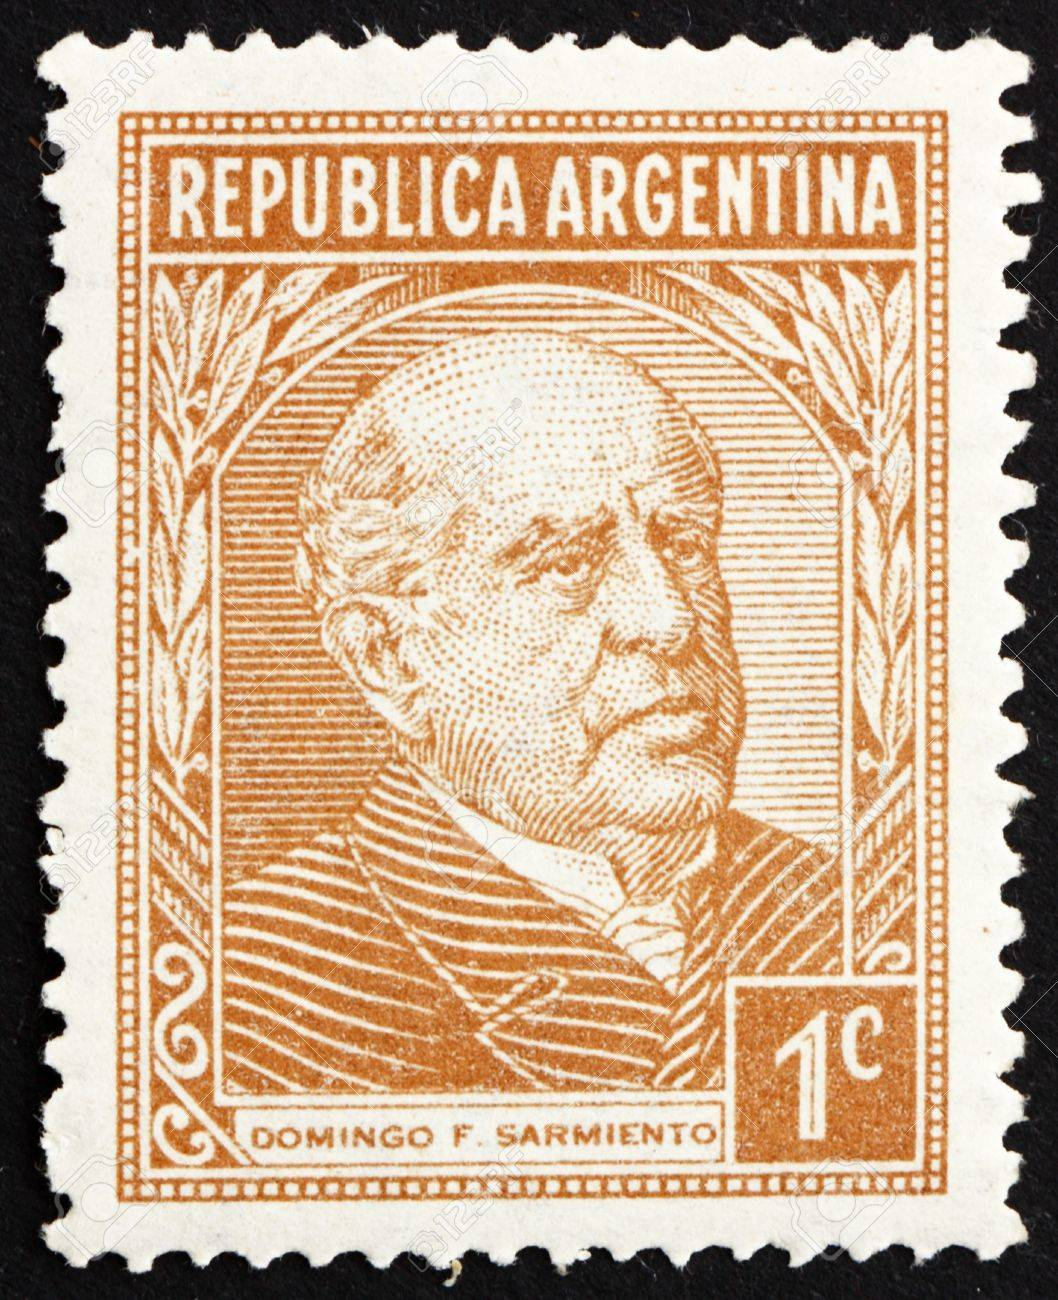 ARGENTINA - CIRCA 1935: a stamp printed in the Argentina shows Domingo Faustino Sarmiento, 7th President of Argentina, 1868 - 1874, circa 1935 Stock Photo - 14755919